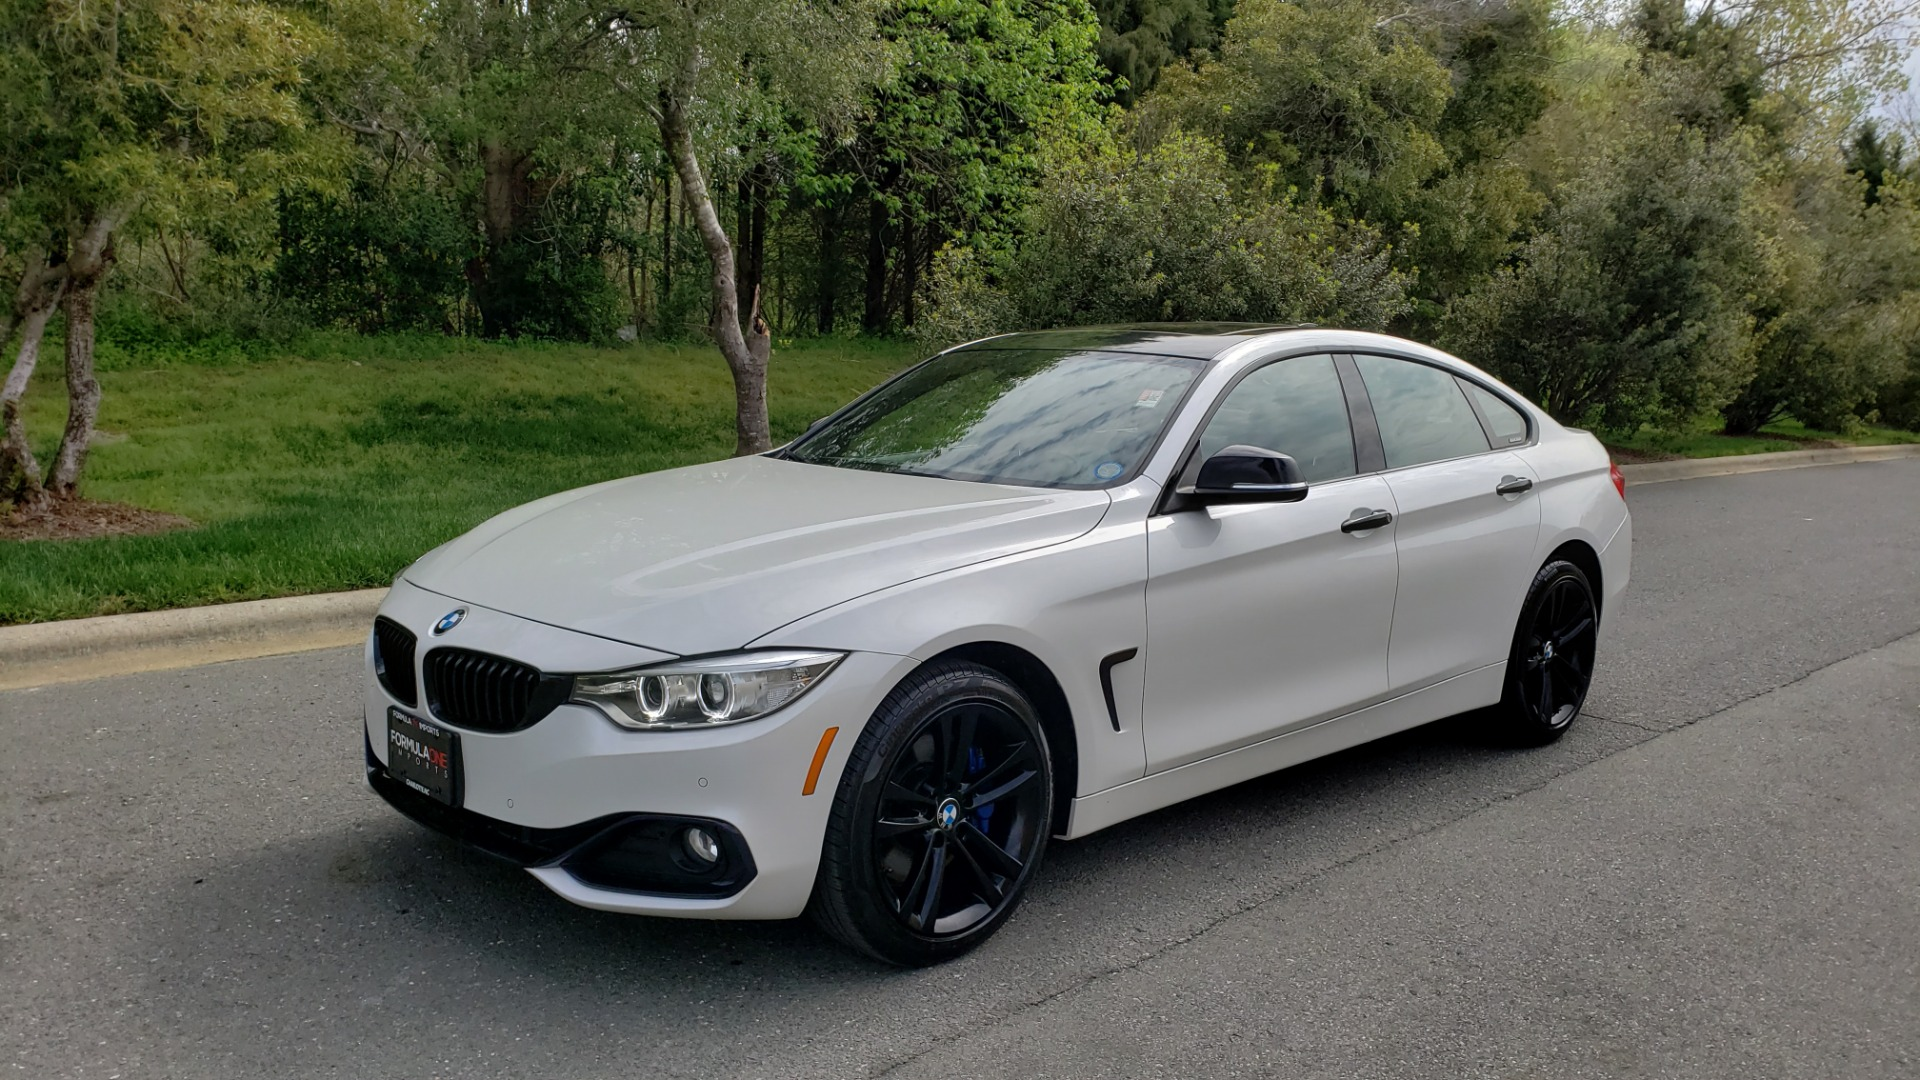 Used 2017 BMW 4 SERIES 440I XDRIVE / NAV / TECH PKG / DRVR ASST / SNRF / REARVIEW for sale Sold at Formula Imports in Charlotte NC 28227 1